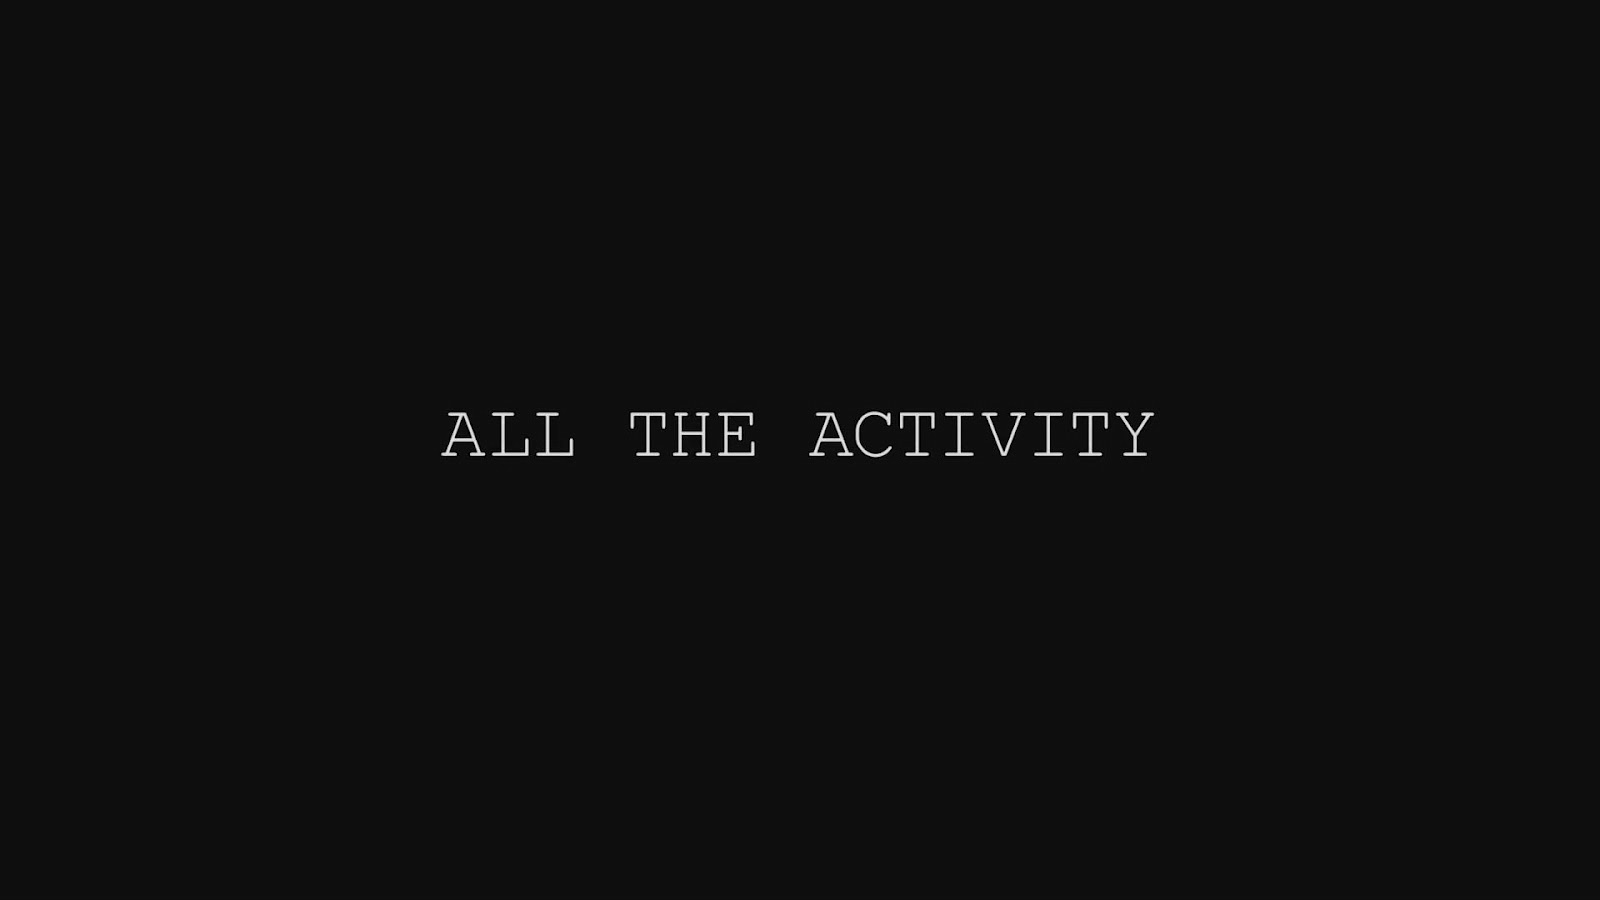 Paranormal+Activity+4+hd+wallpapers+%2810%29 Paranormal Activity 4 Fragmanı İzle